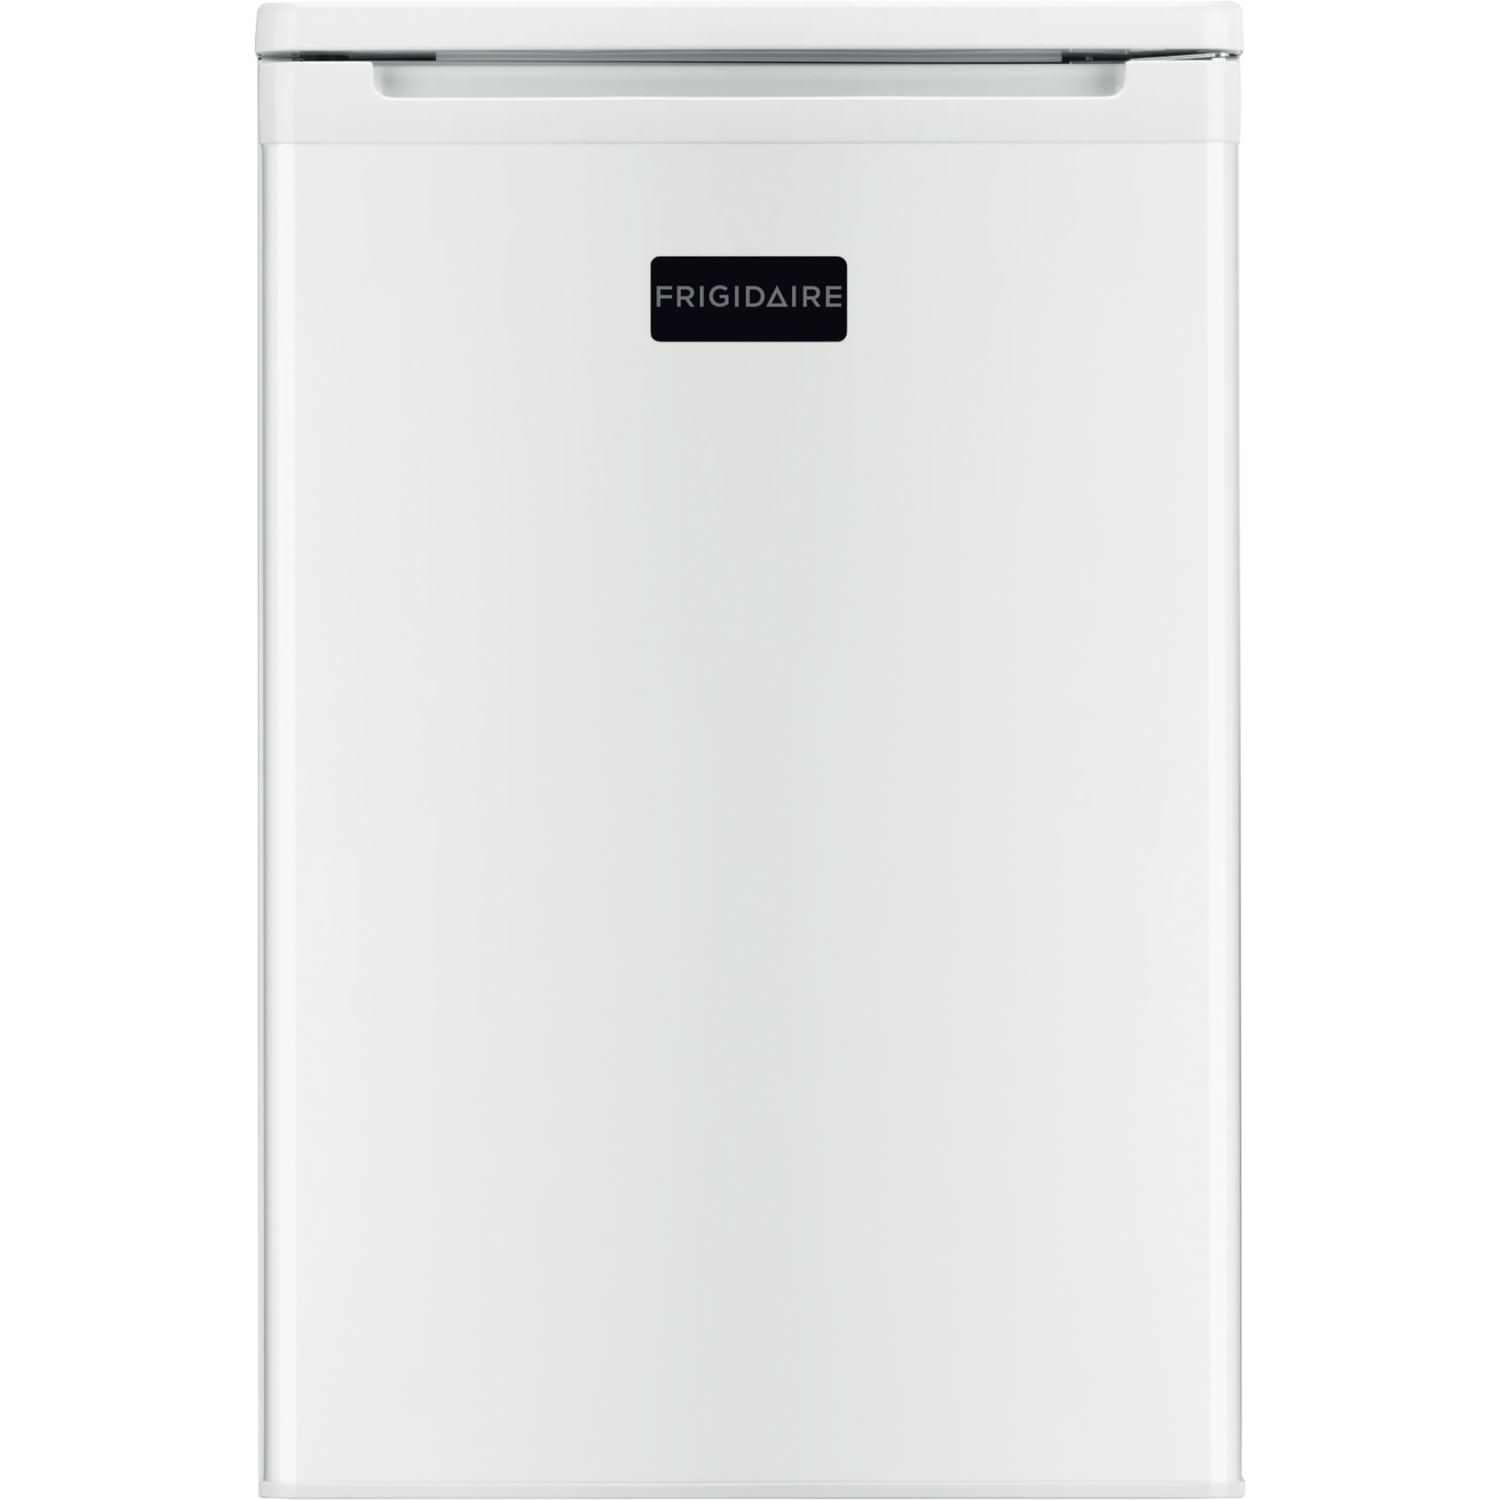 Frigidaire FRLF55W 155 Litre Under Counter Larder Fridge